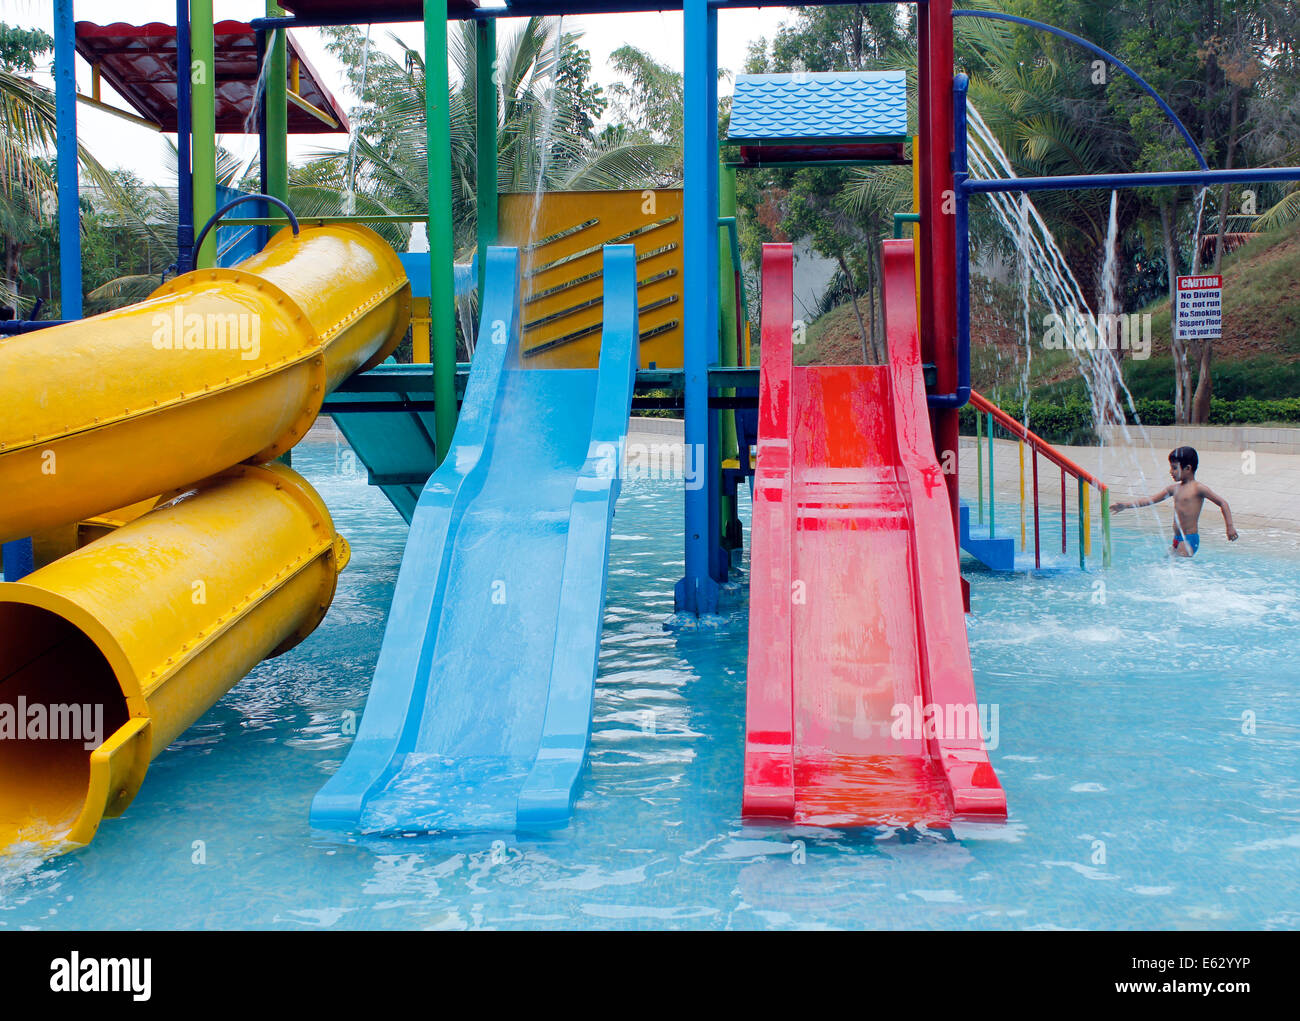 Water Amusement Games At Innovative Film City Near Bangalore India Stock Photo Royalty Free